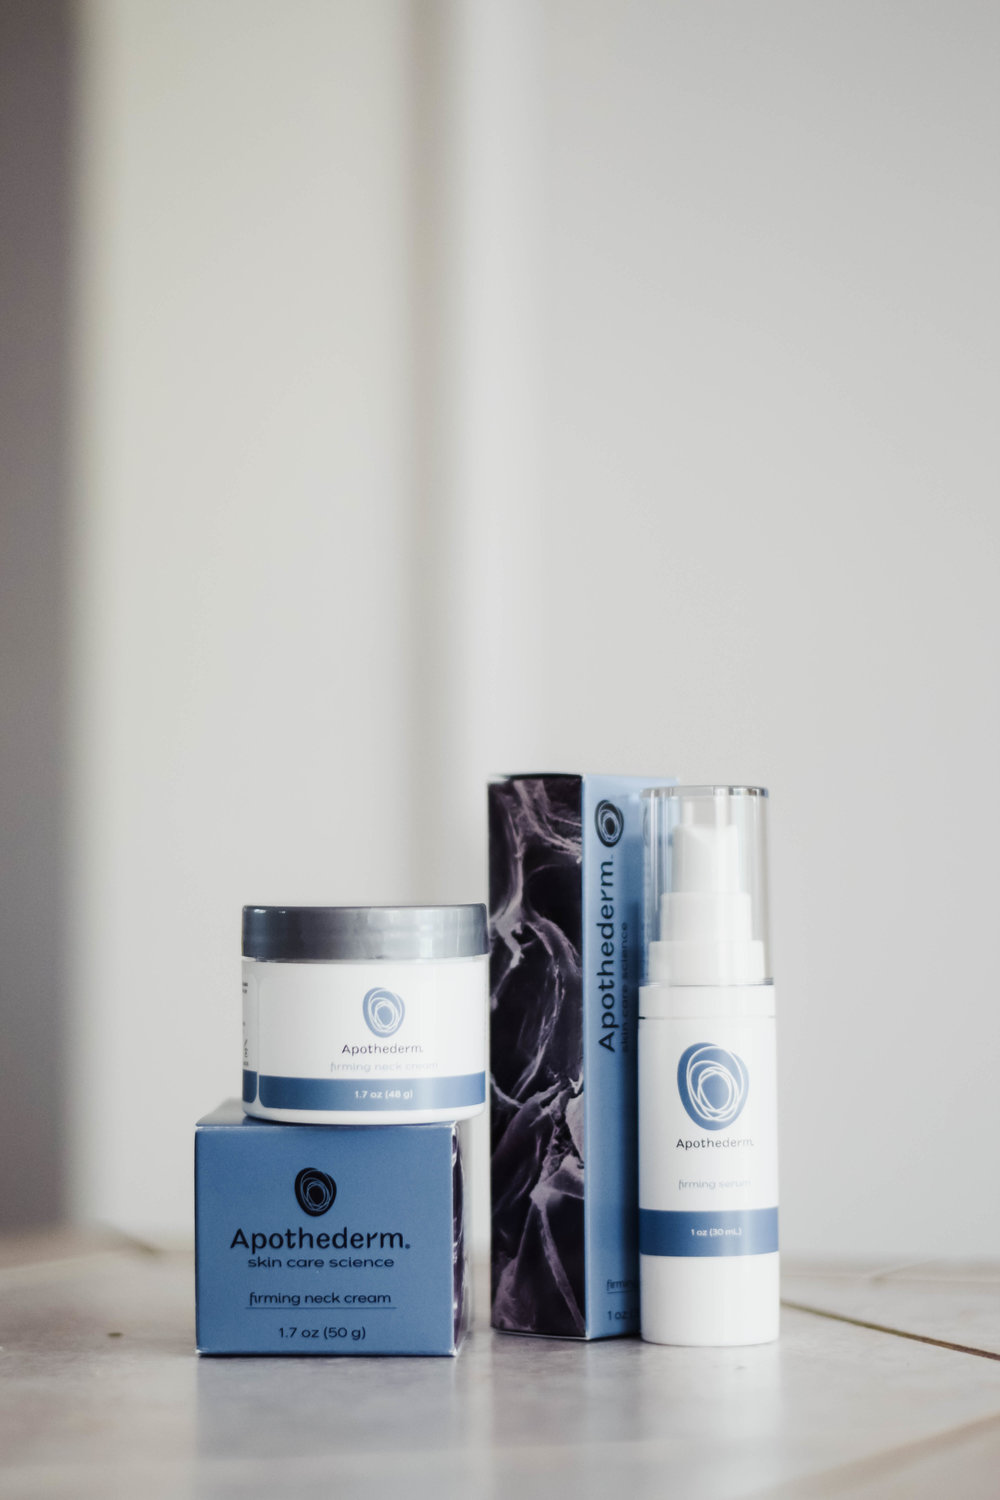 Apothederm - Best Anti Aging Skin Care Products - The Overwhelmed Mommy | Mommy Blogger